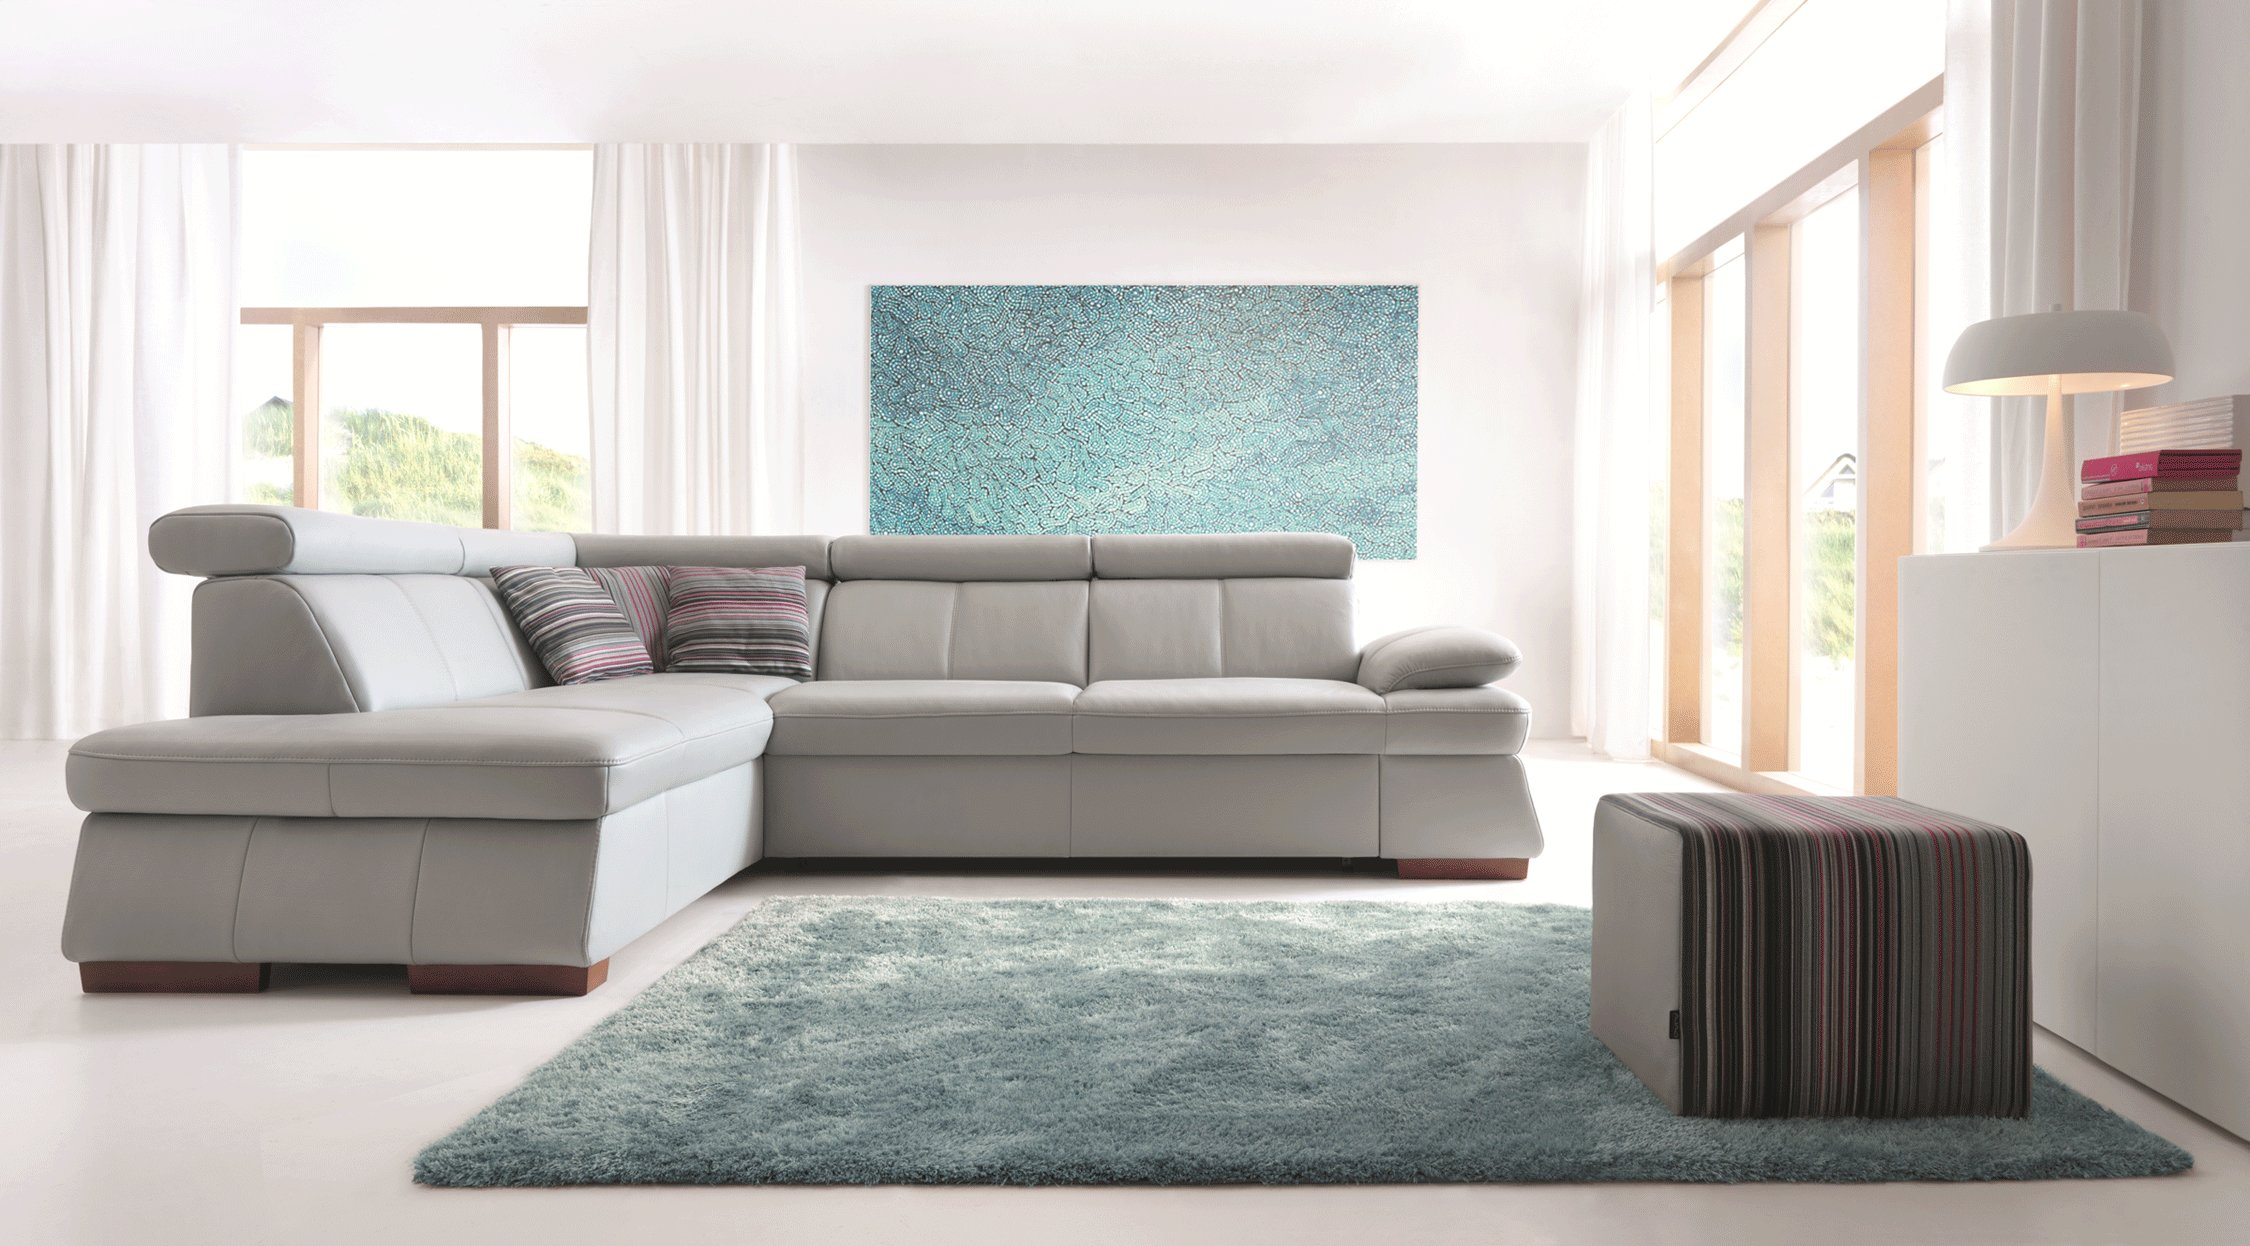 Italian Leather Sleeper Sectional with Storage and Motion Heads